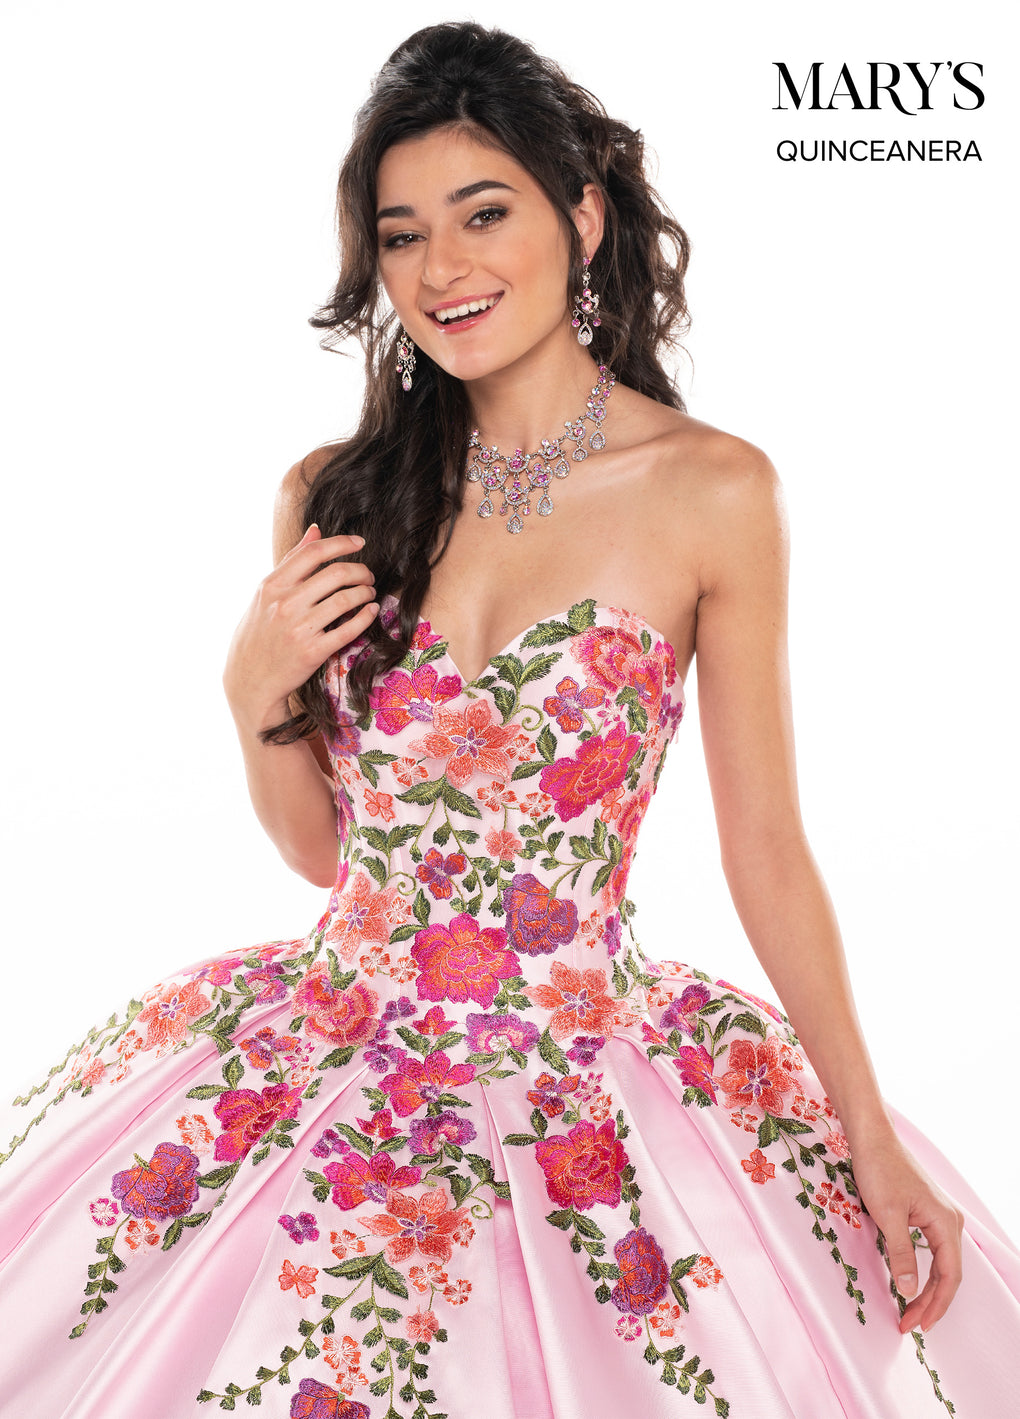 Marys Quinceanera Dresses in Gold/Multi or Pink/Multi Color